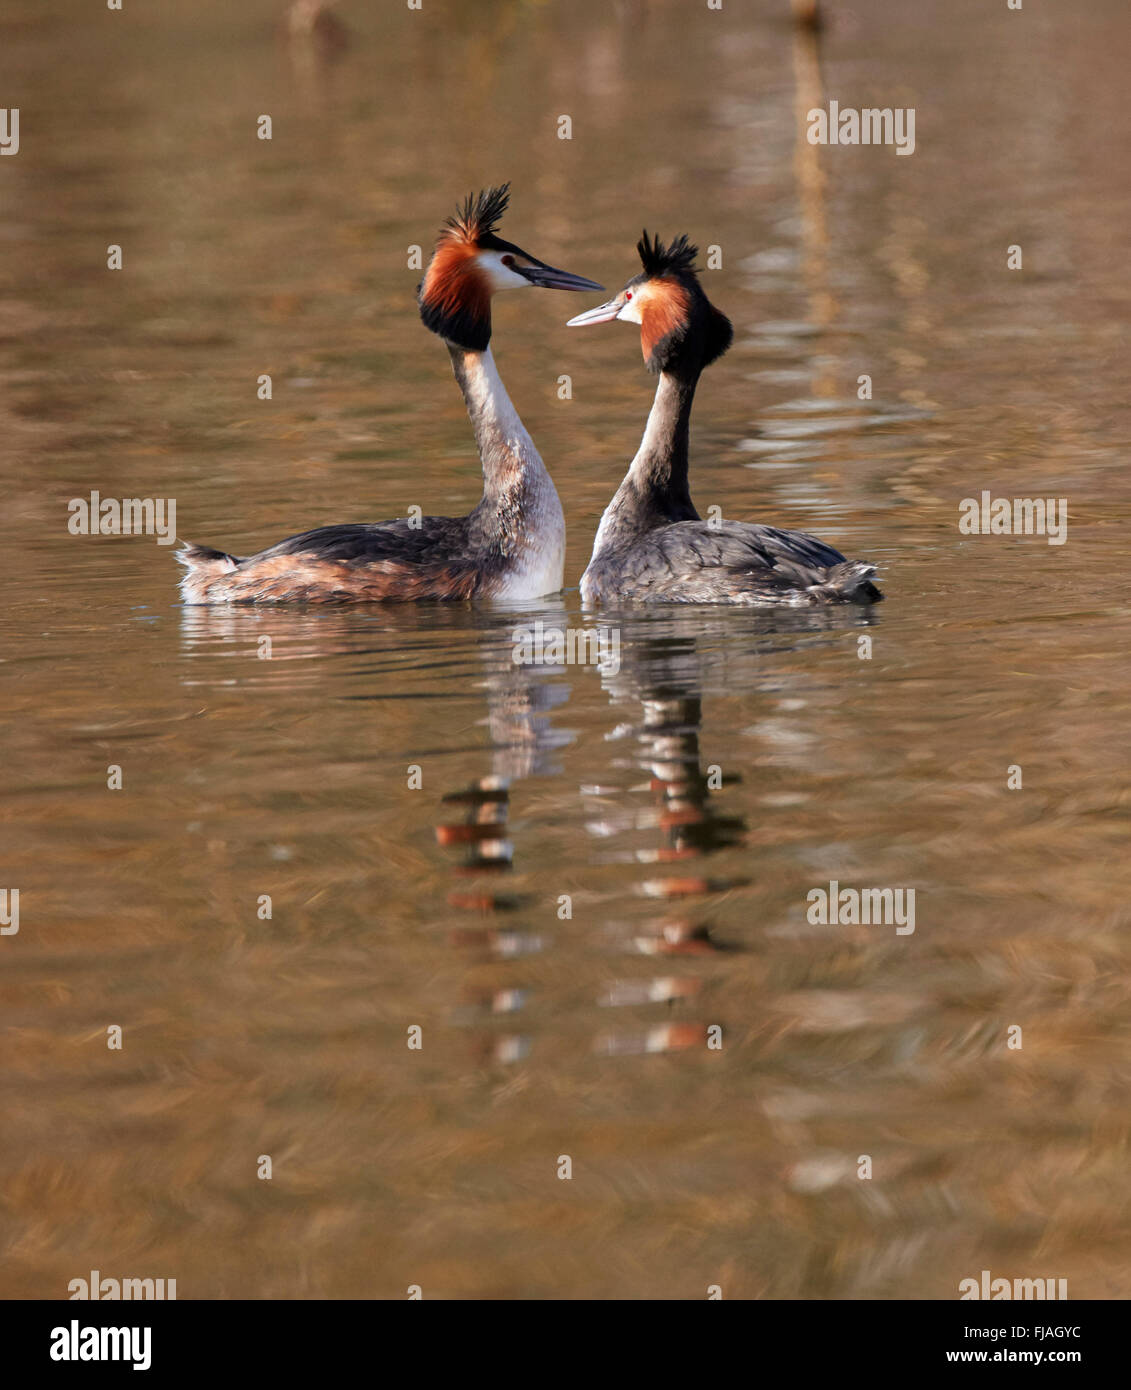 Pair of Great Crested Grebes courting. River Thames, West Molesey, Surrey, England. Stock Photo